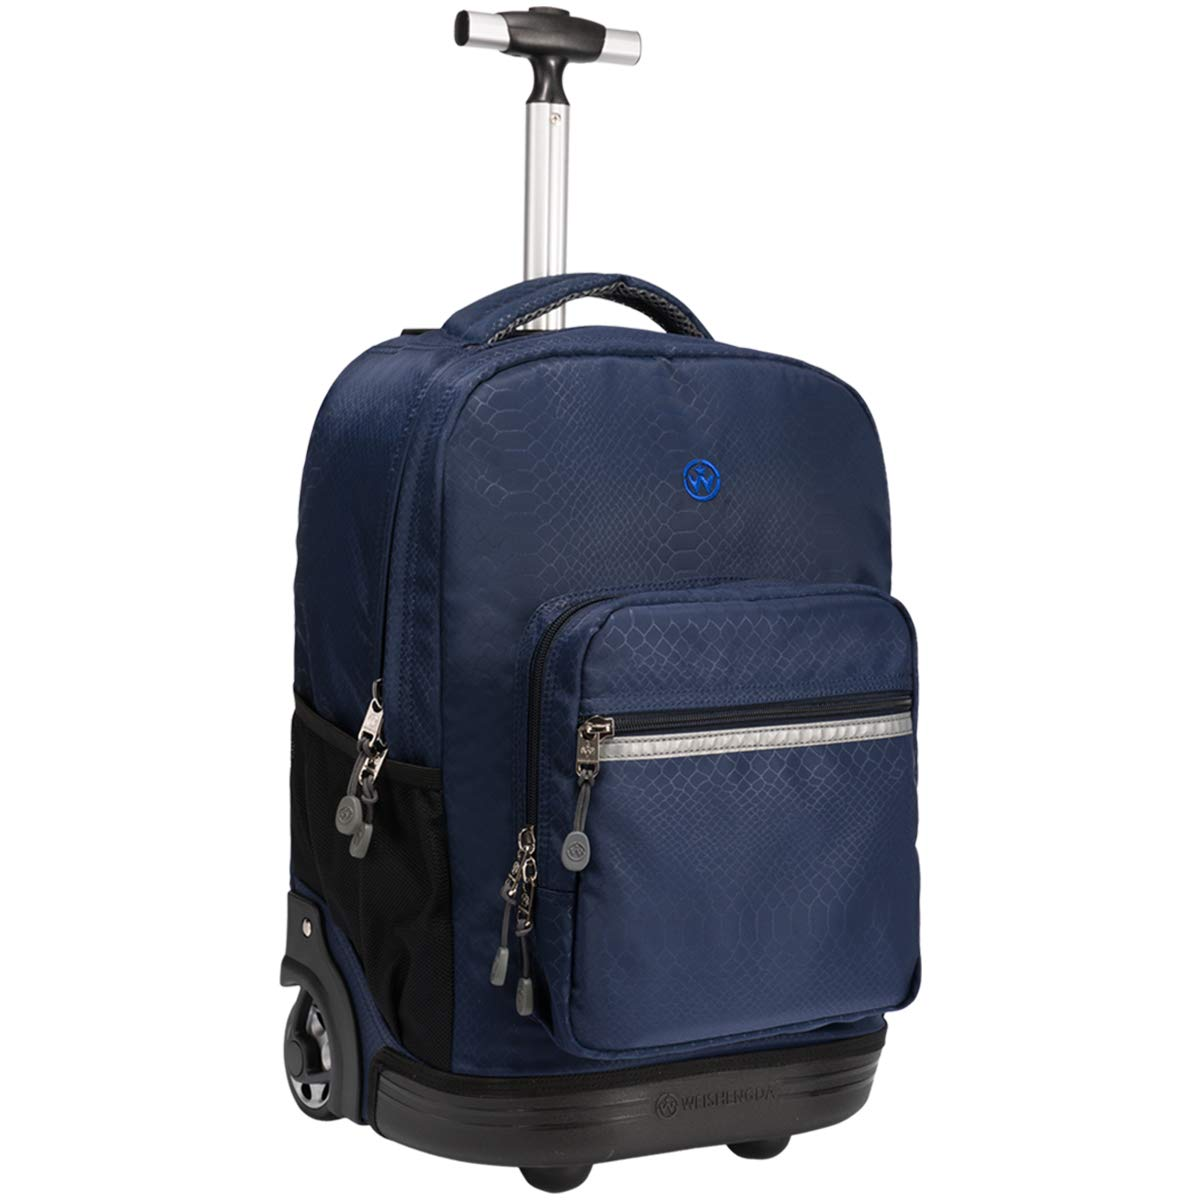 WEISHENGDA 18 inches Wheeled Rolling Backpack for Boys and Girls School Student Books Laptop Travel Trolley Bag, Dark Blue by WEISHENGDA